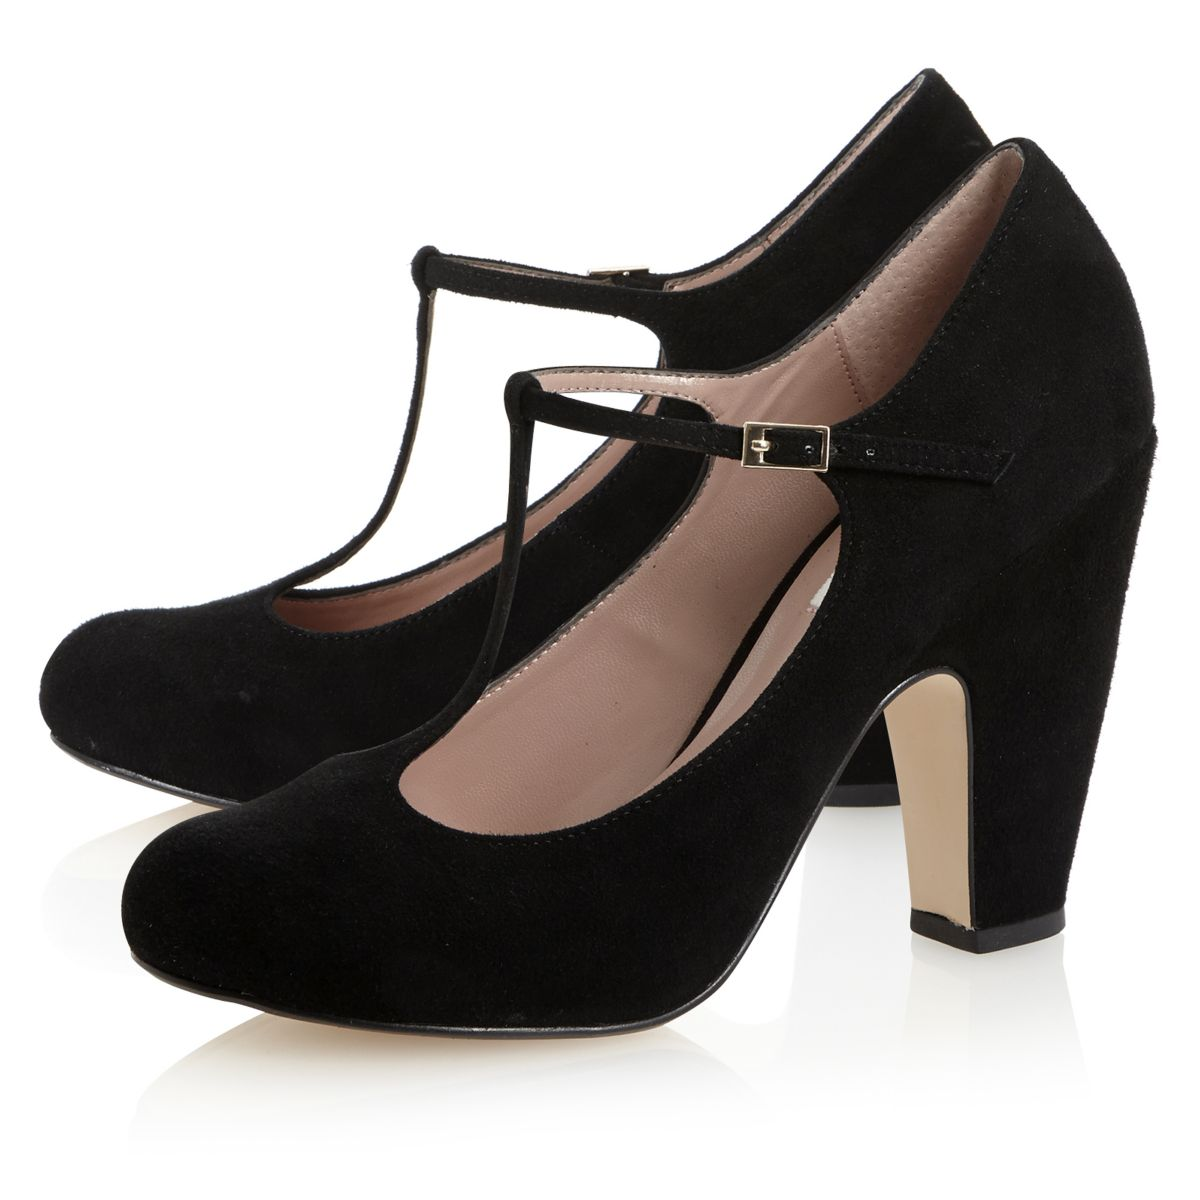 Invest in a pair of womens black faux suede t bar closed court shoes. These shoes are sure to become your new go-to pair for everything from work to evening outs.5/5(5).